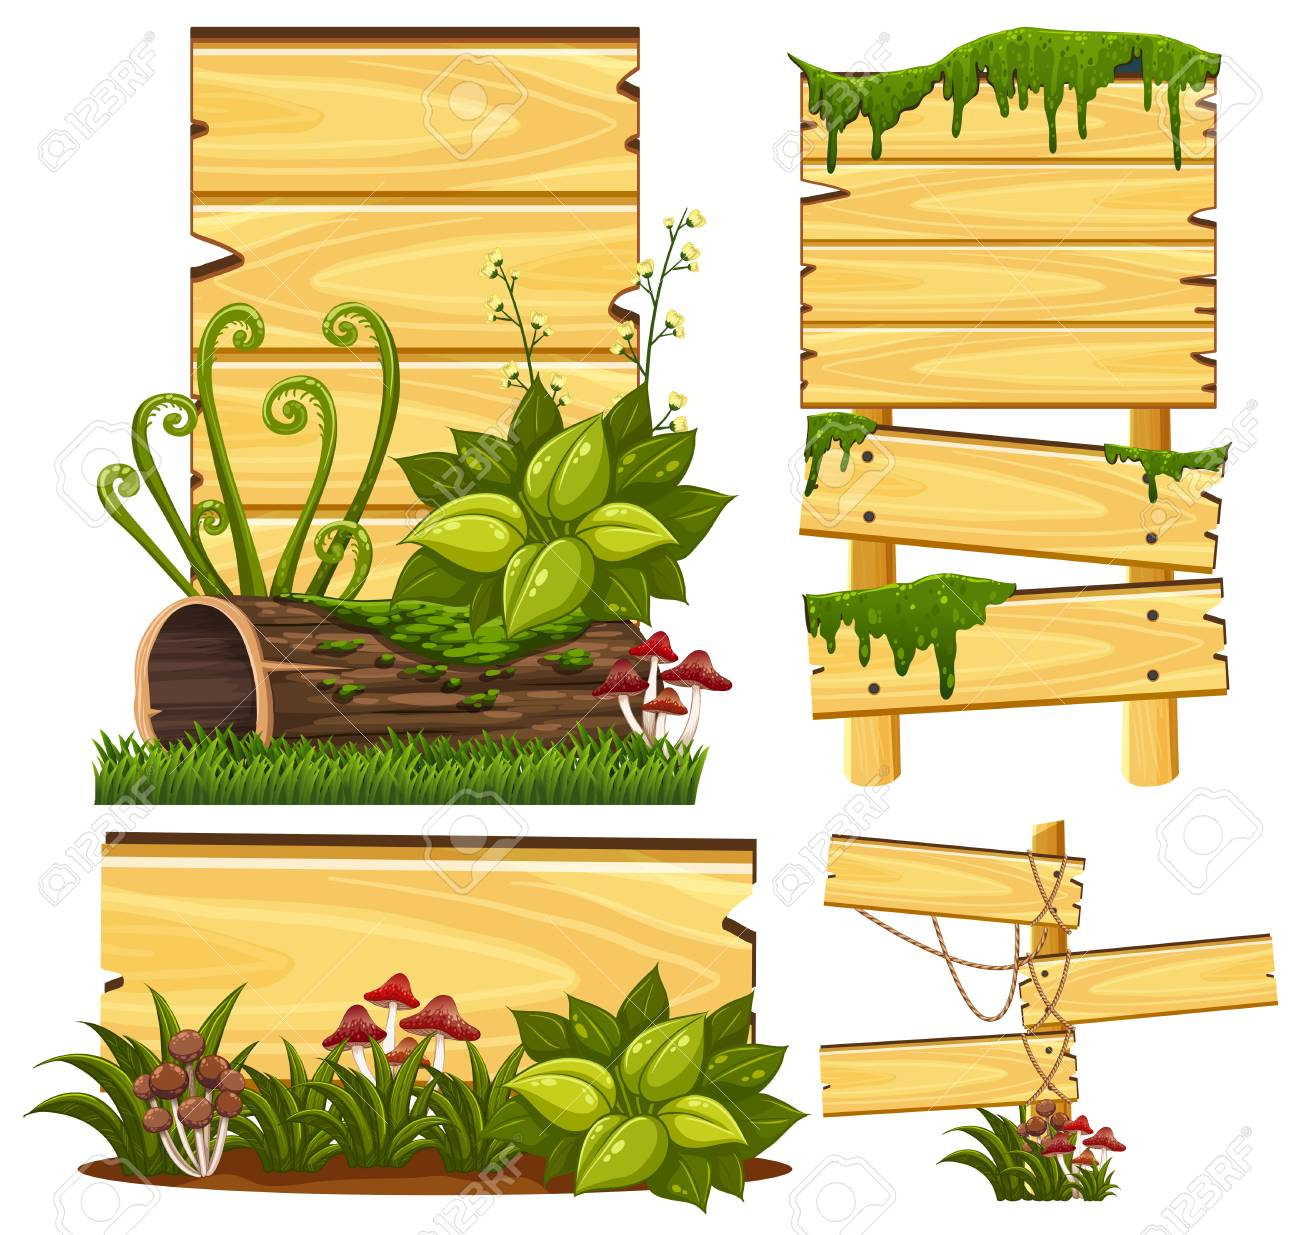 wooden sign template with moss and mushroom illustration royalty